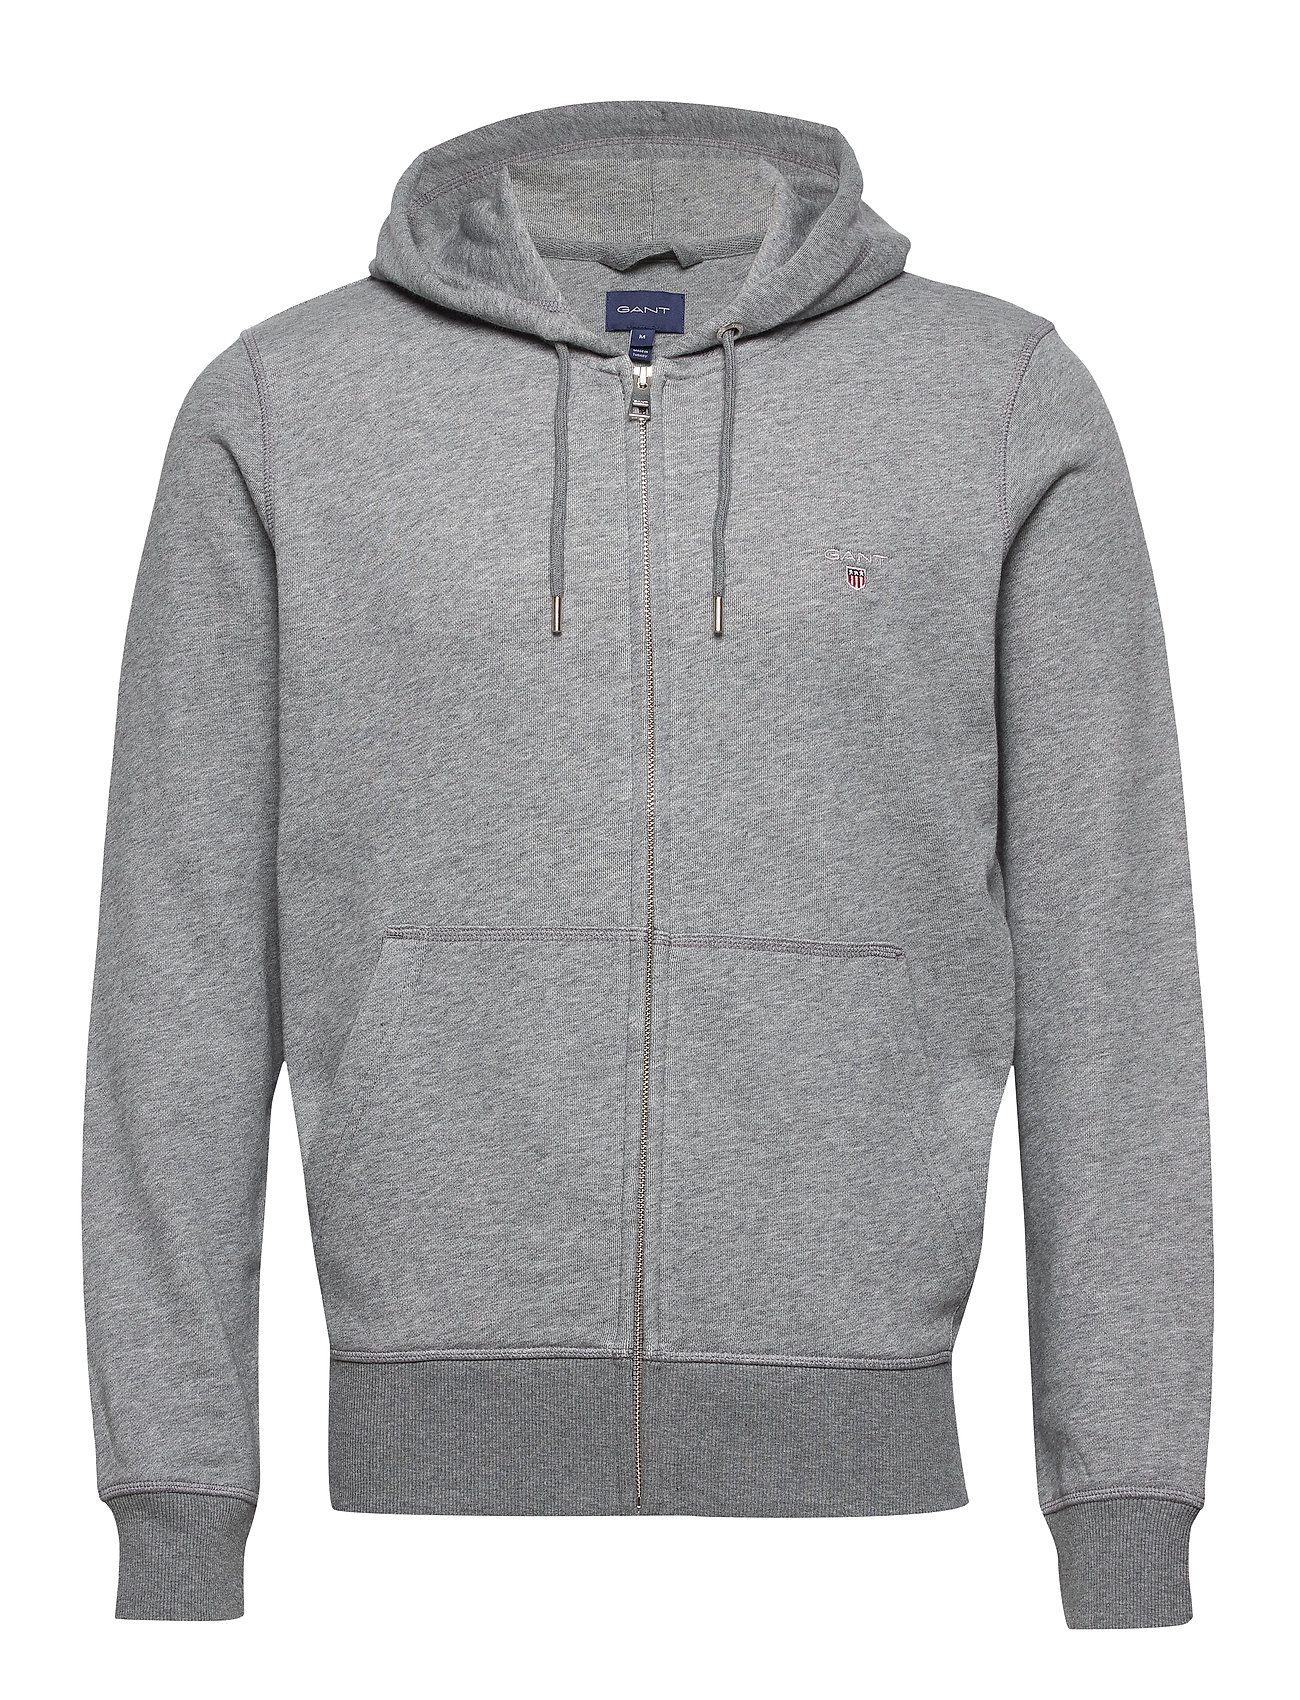 GANT THE ORIGINAL FULL ZIP HOODIE